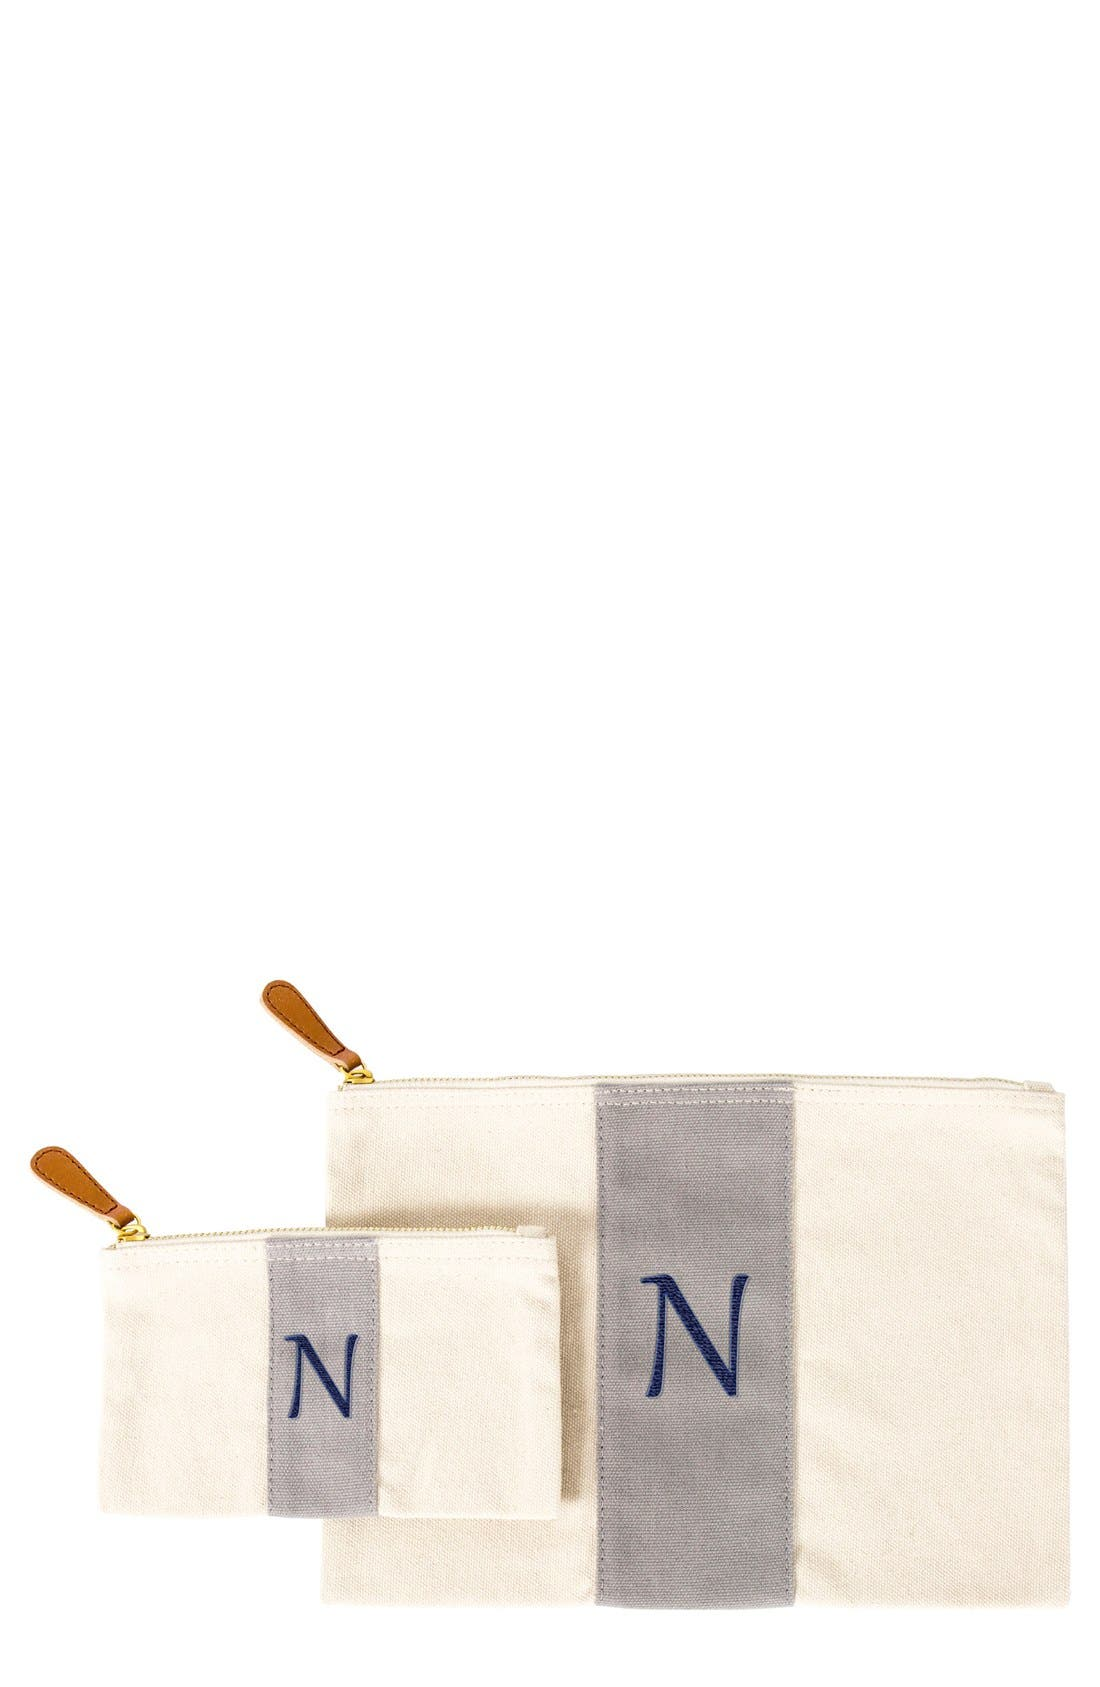 Personalized Canvas Clutch,                         Main,                         color, Grey-N